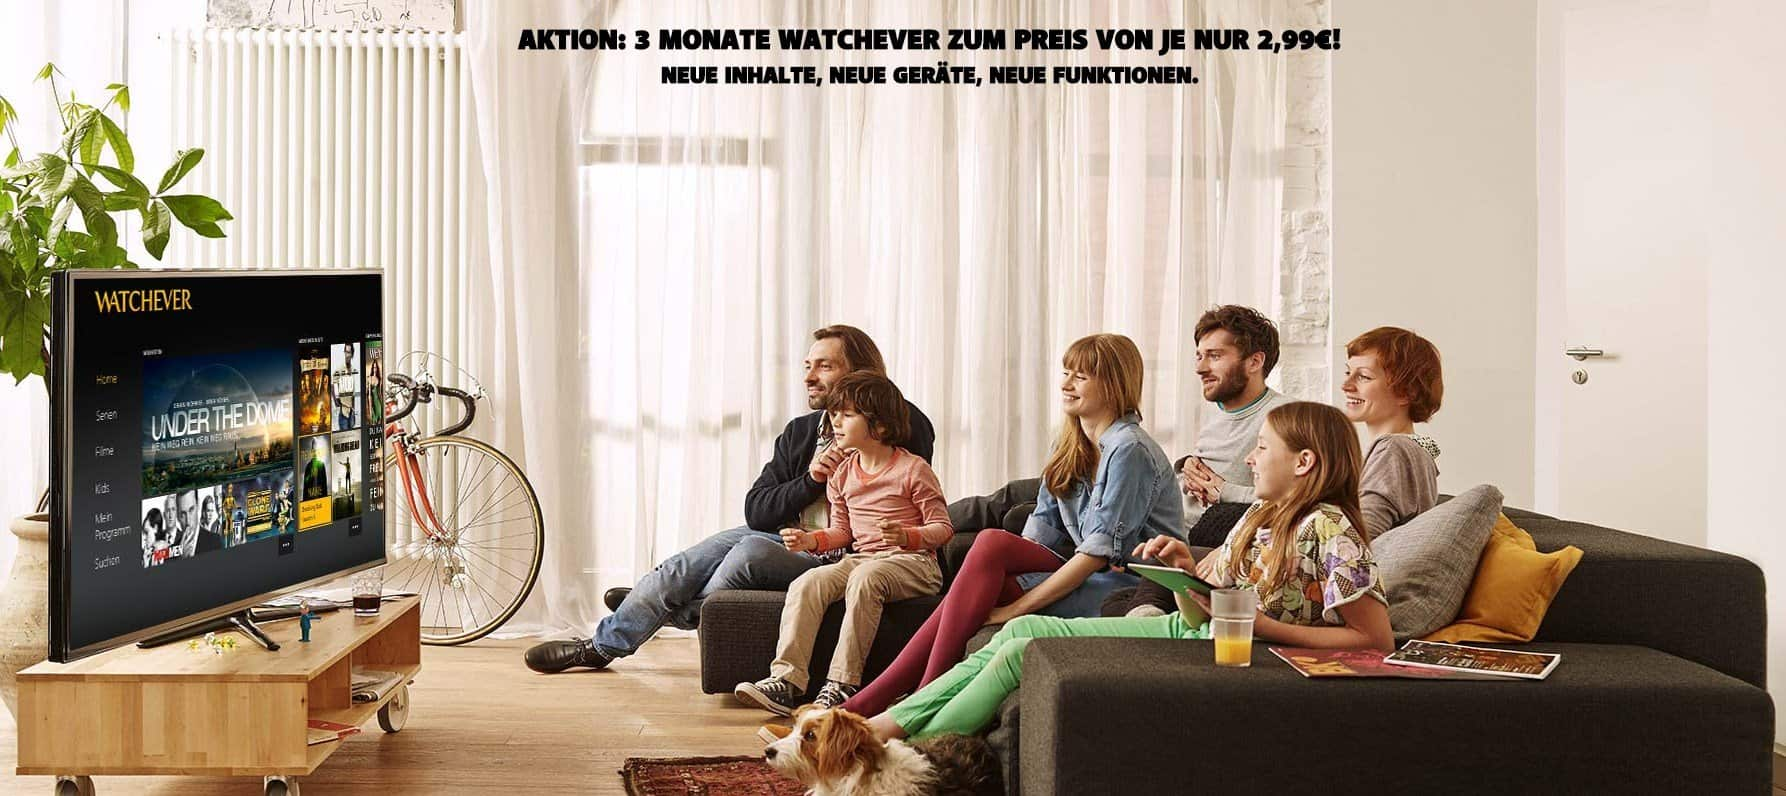 Watchever - Landing-Aktion - Drei Monate für 2,99 Euro